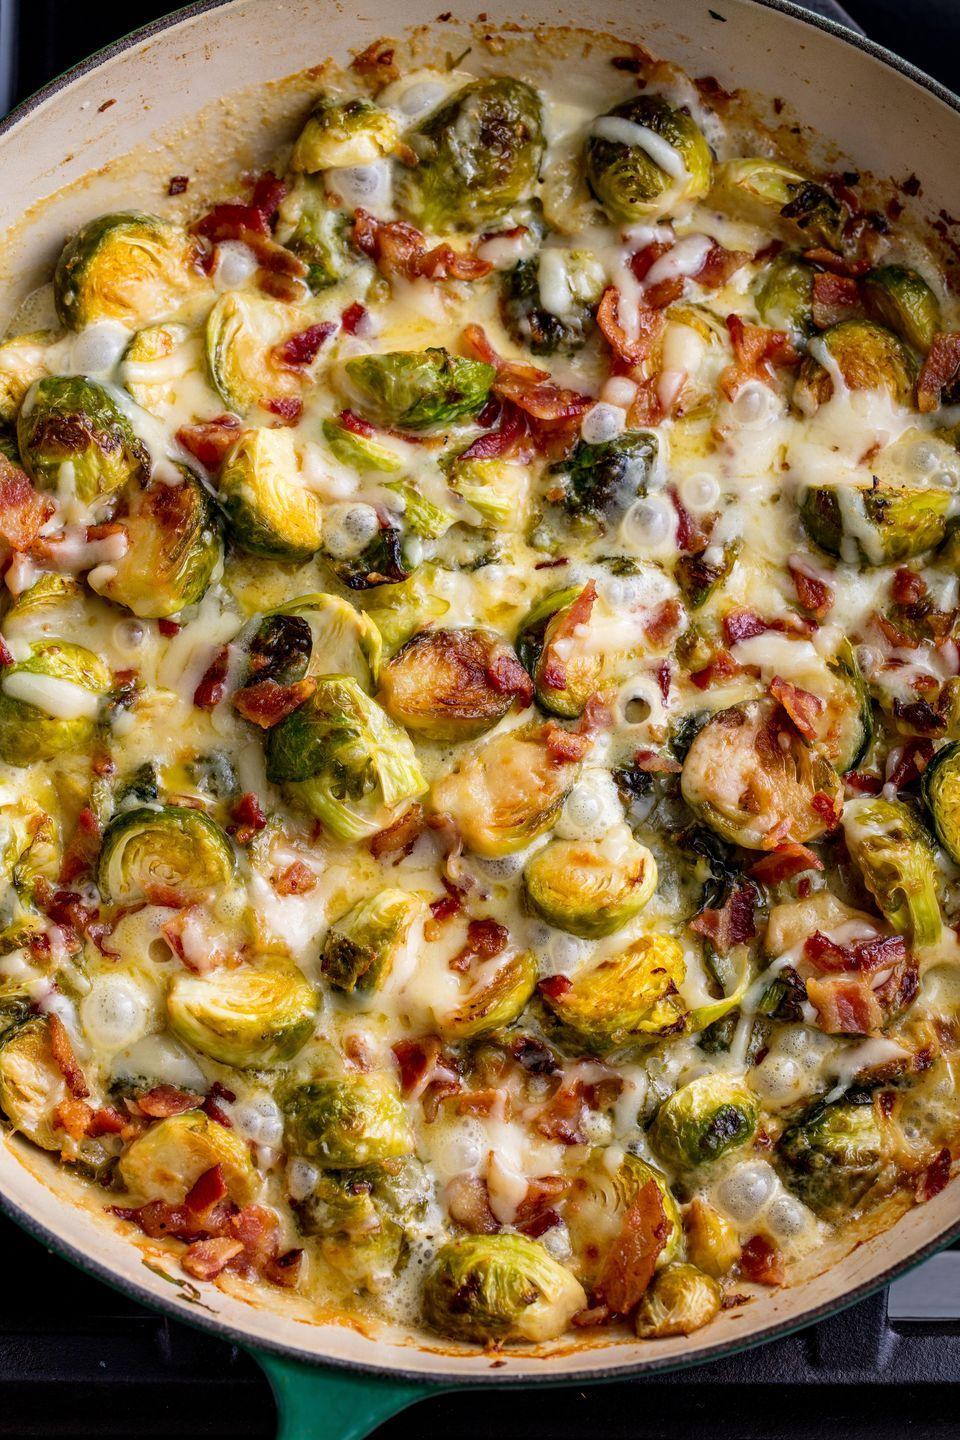 """<p>And the one side that will take you, oh, 15 minutes, to prep.</p><p>Get the recipe from <a href=""""https://www.delish.com/holiday-recipes/thanksgiving/recipes/a44632/cheesy-brussels-sprout-casserole-recipe/"""" rel=""""nofollow noopener"""" target=""""_blank"""" data-ylk=""""slk:Delish"""" class=""""link rapid-noclick-resp"""">Delish</a>. </p>"""